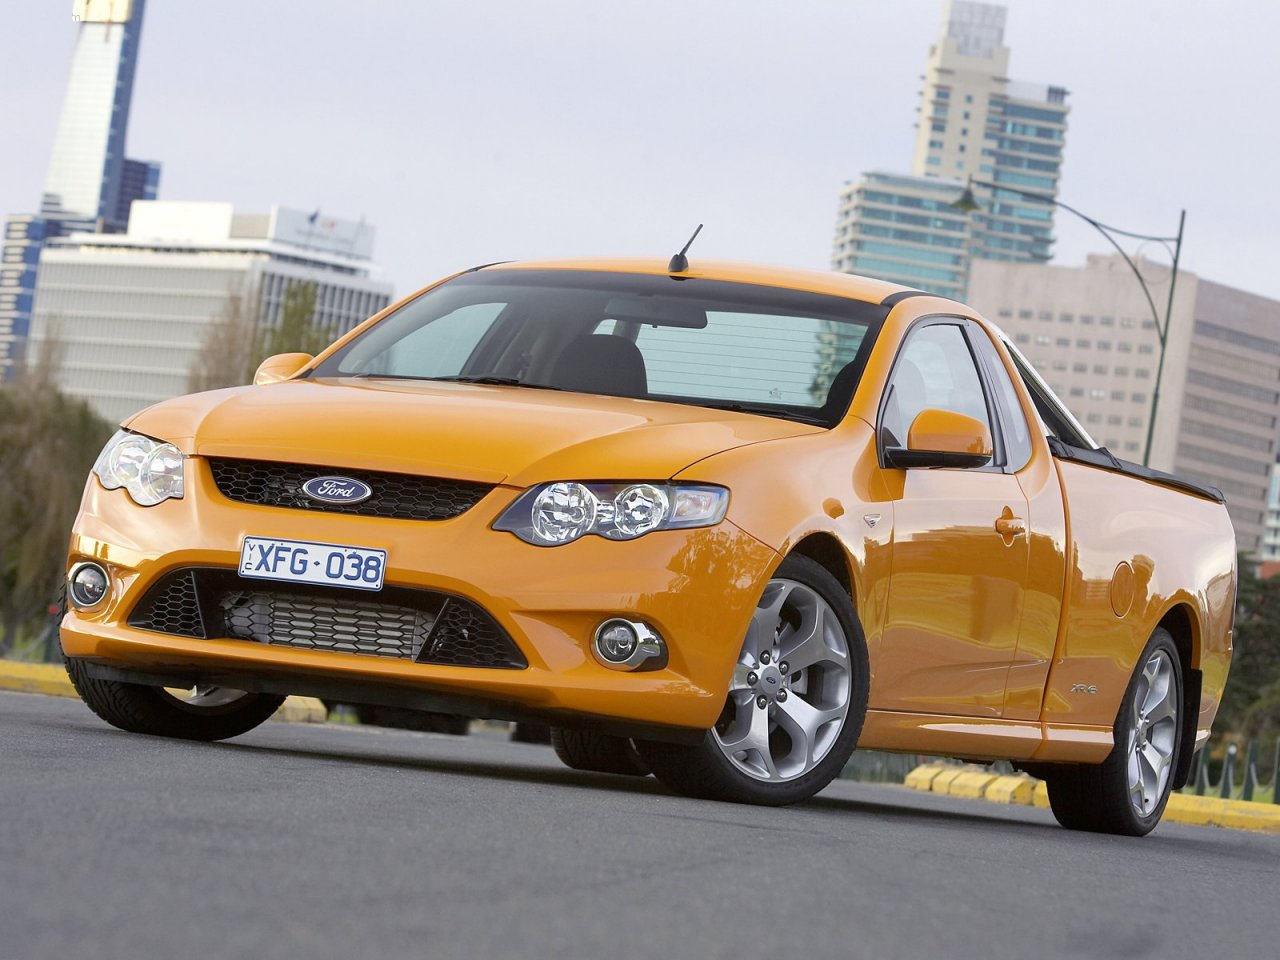 Ford Fg Falcon Xr6 Ute Specs 0 60 Lap Times Performance Data